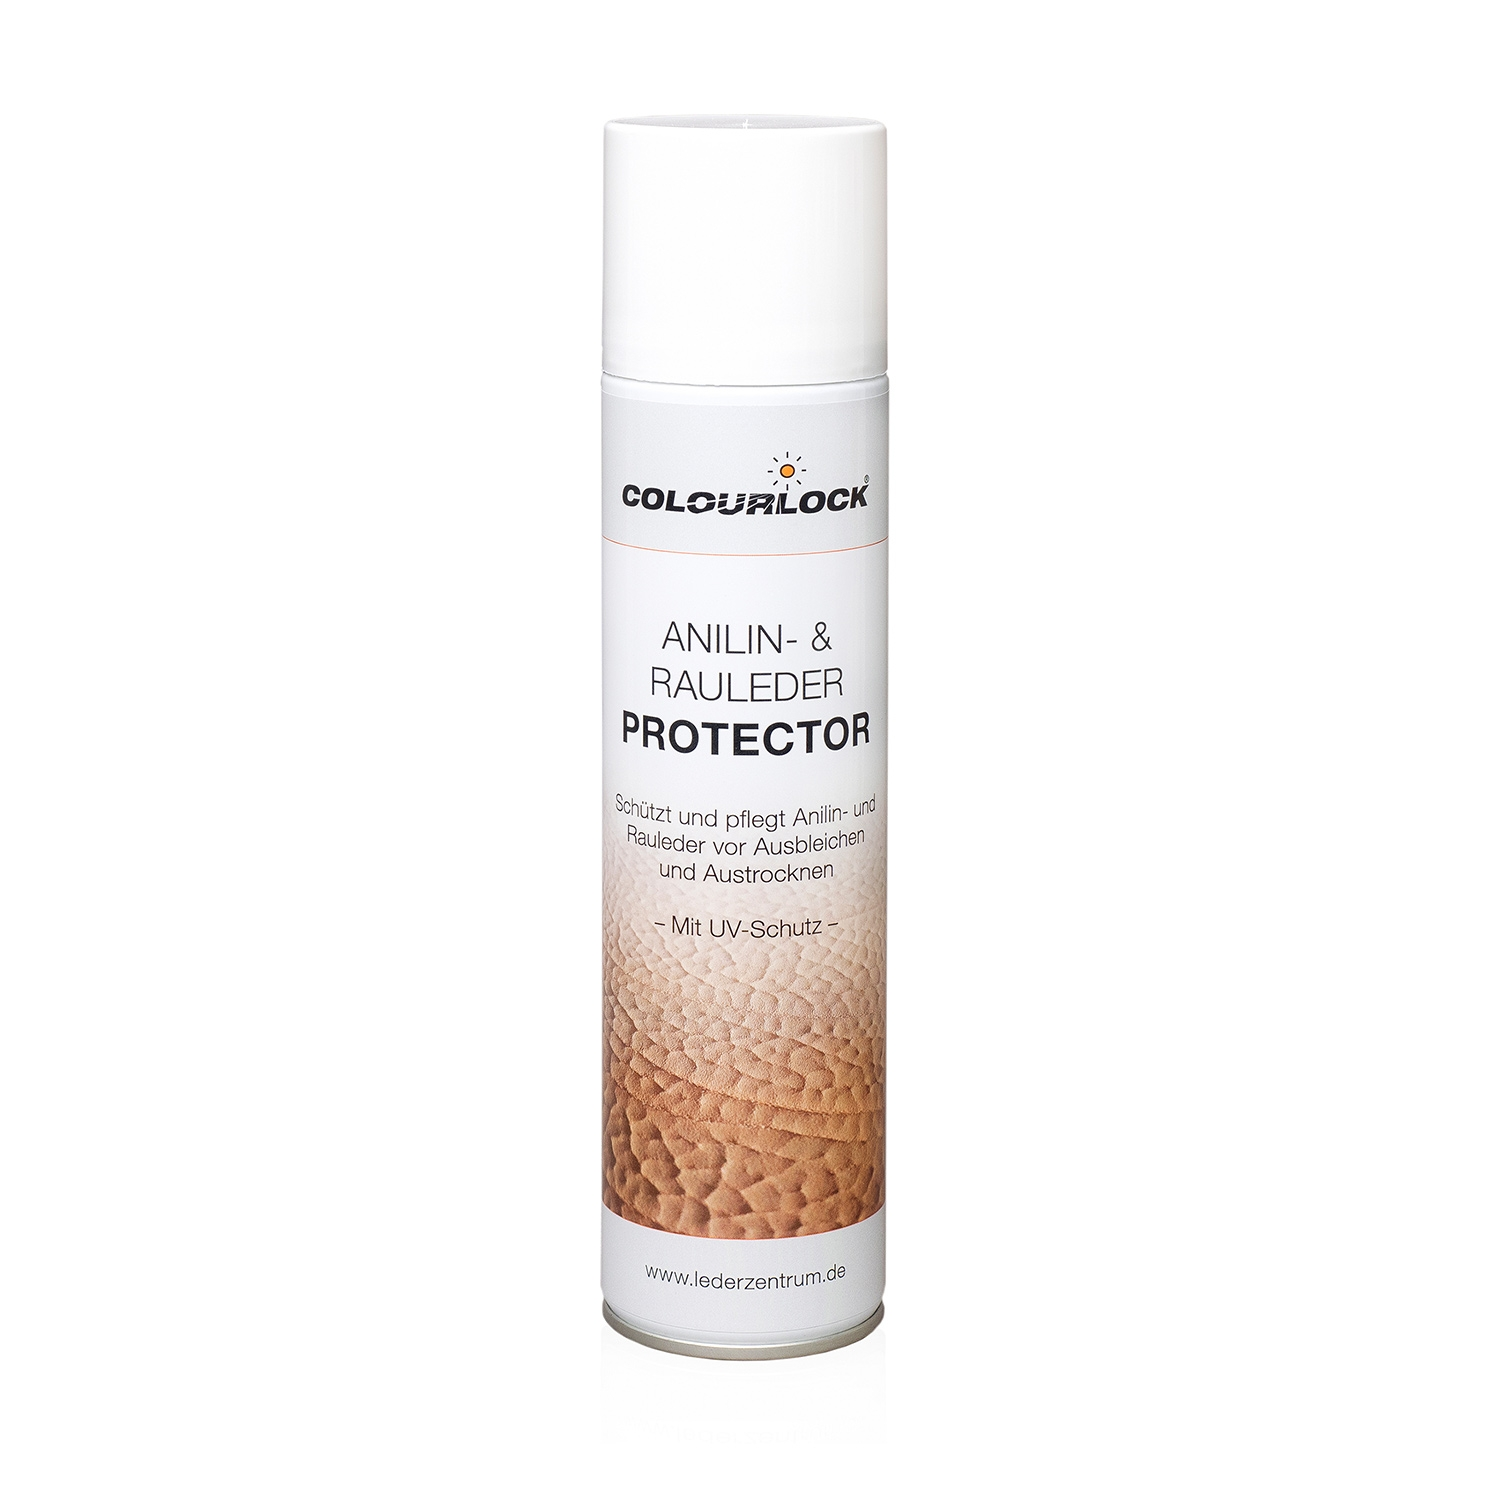 COLOURLOCK Anilin- & Rauleder Protector, 400 ml